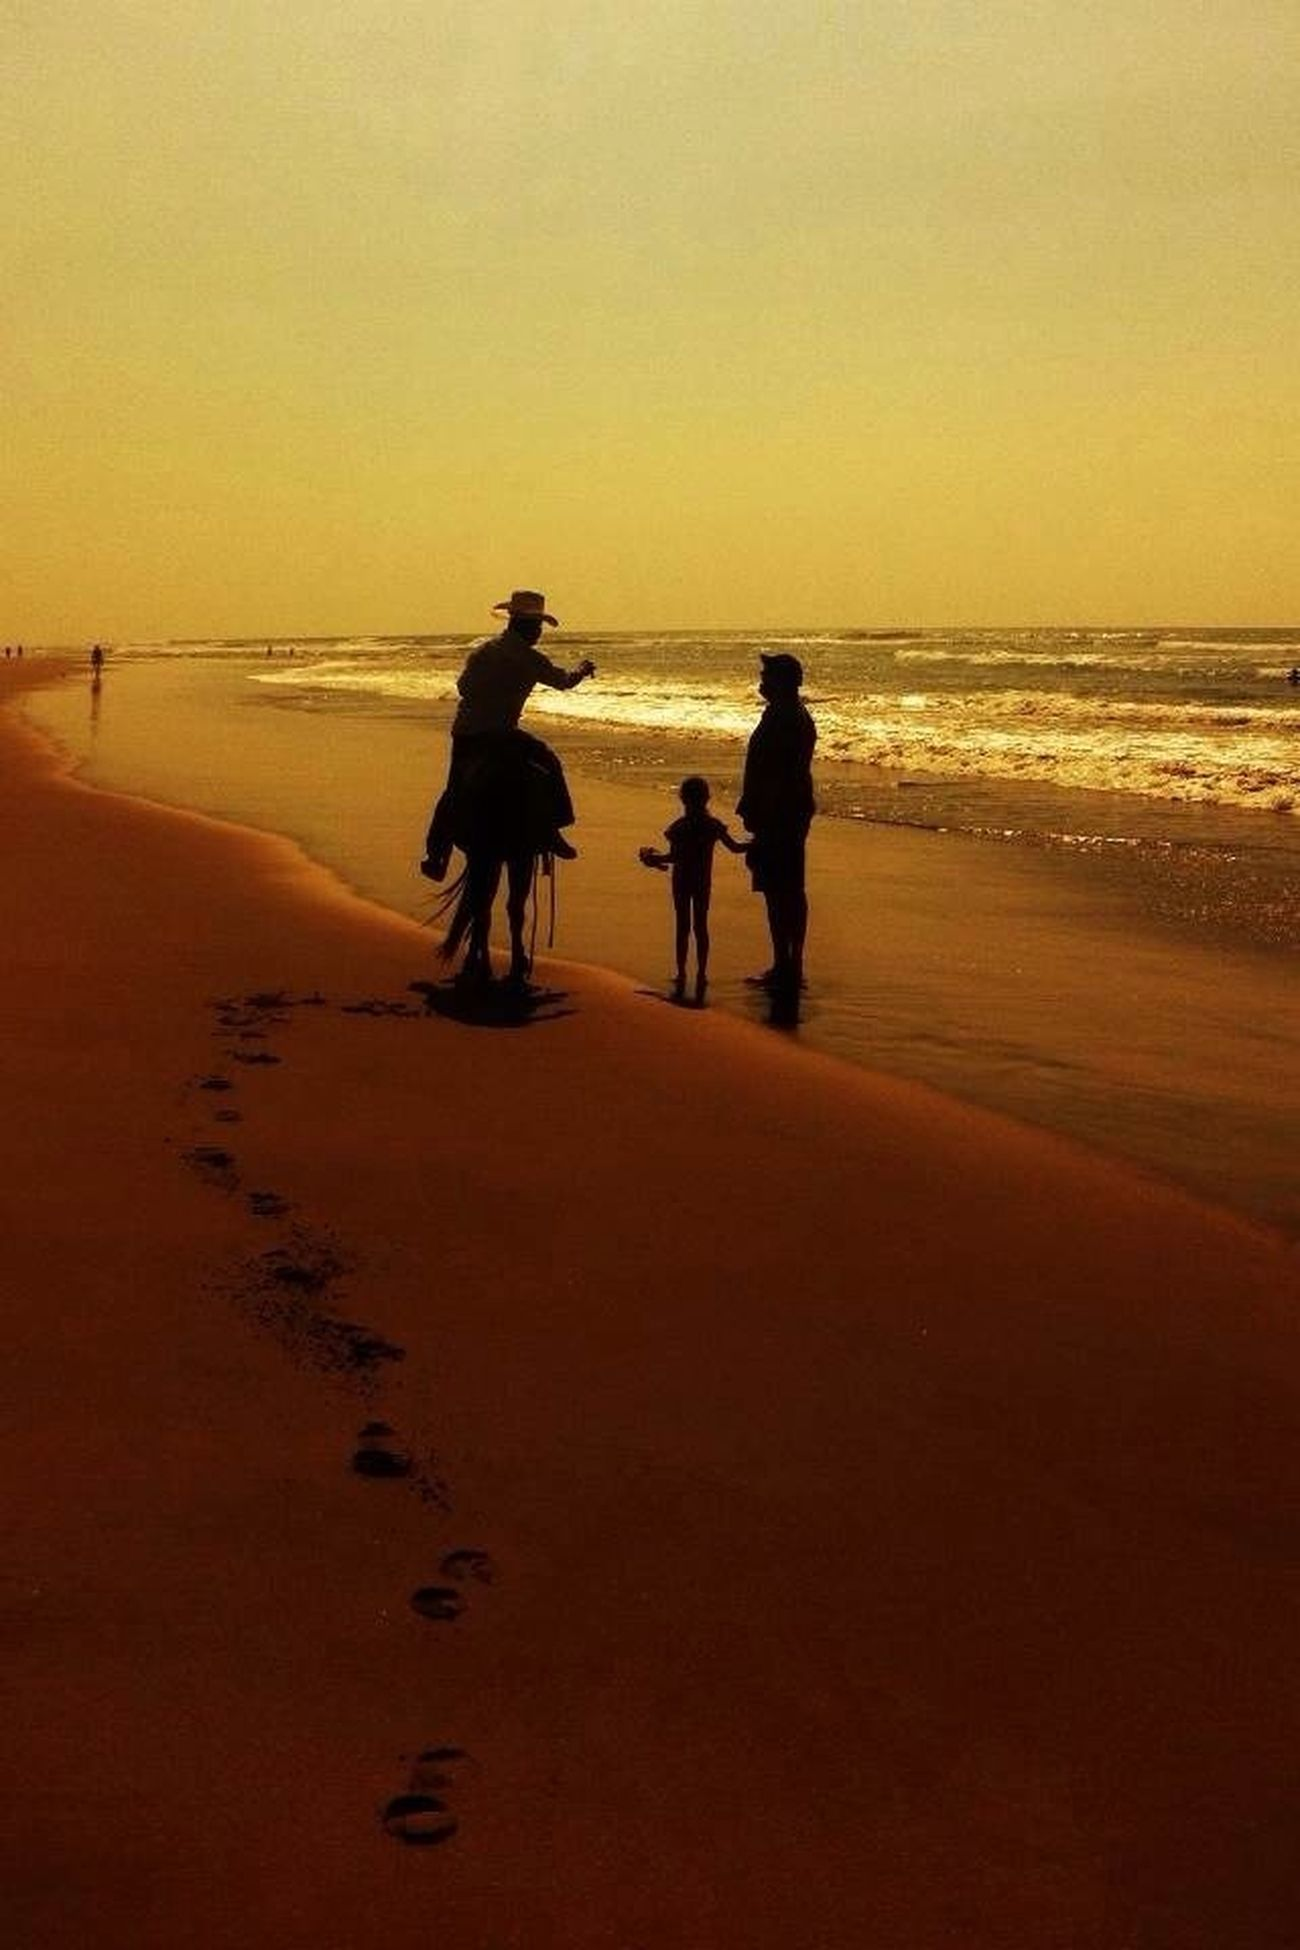 sunset, beach, sea, silhouette, horizon over water, men, water, orange color, lifestyles, full length, leisure activity, togetherness, sand, shore, clear sky, copy space, walking, person